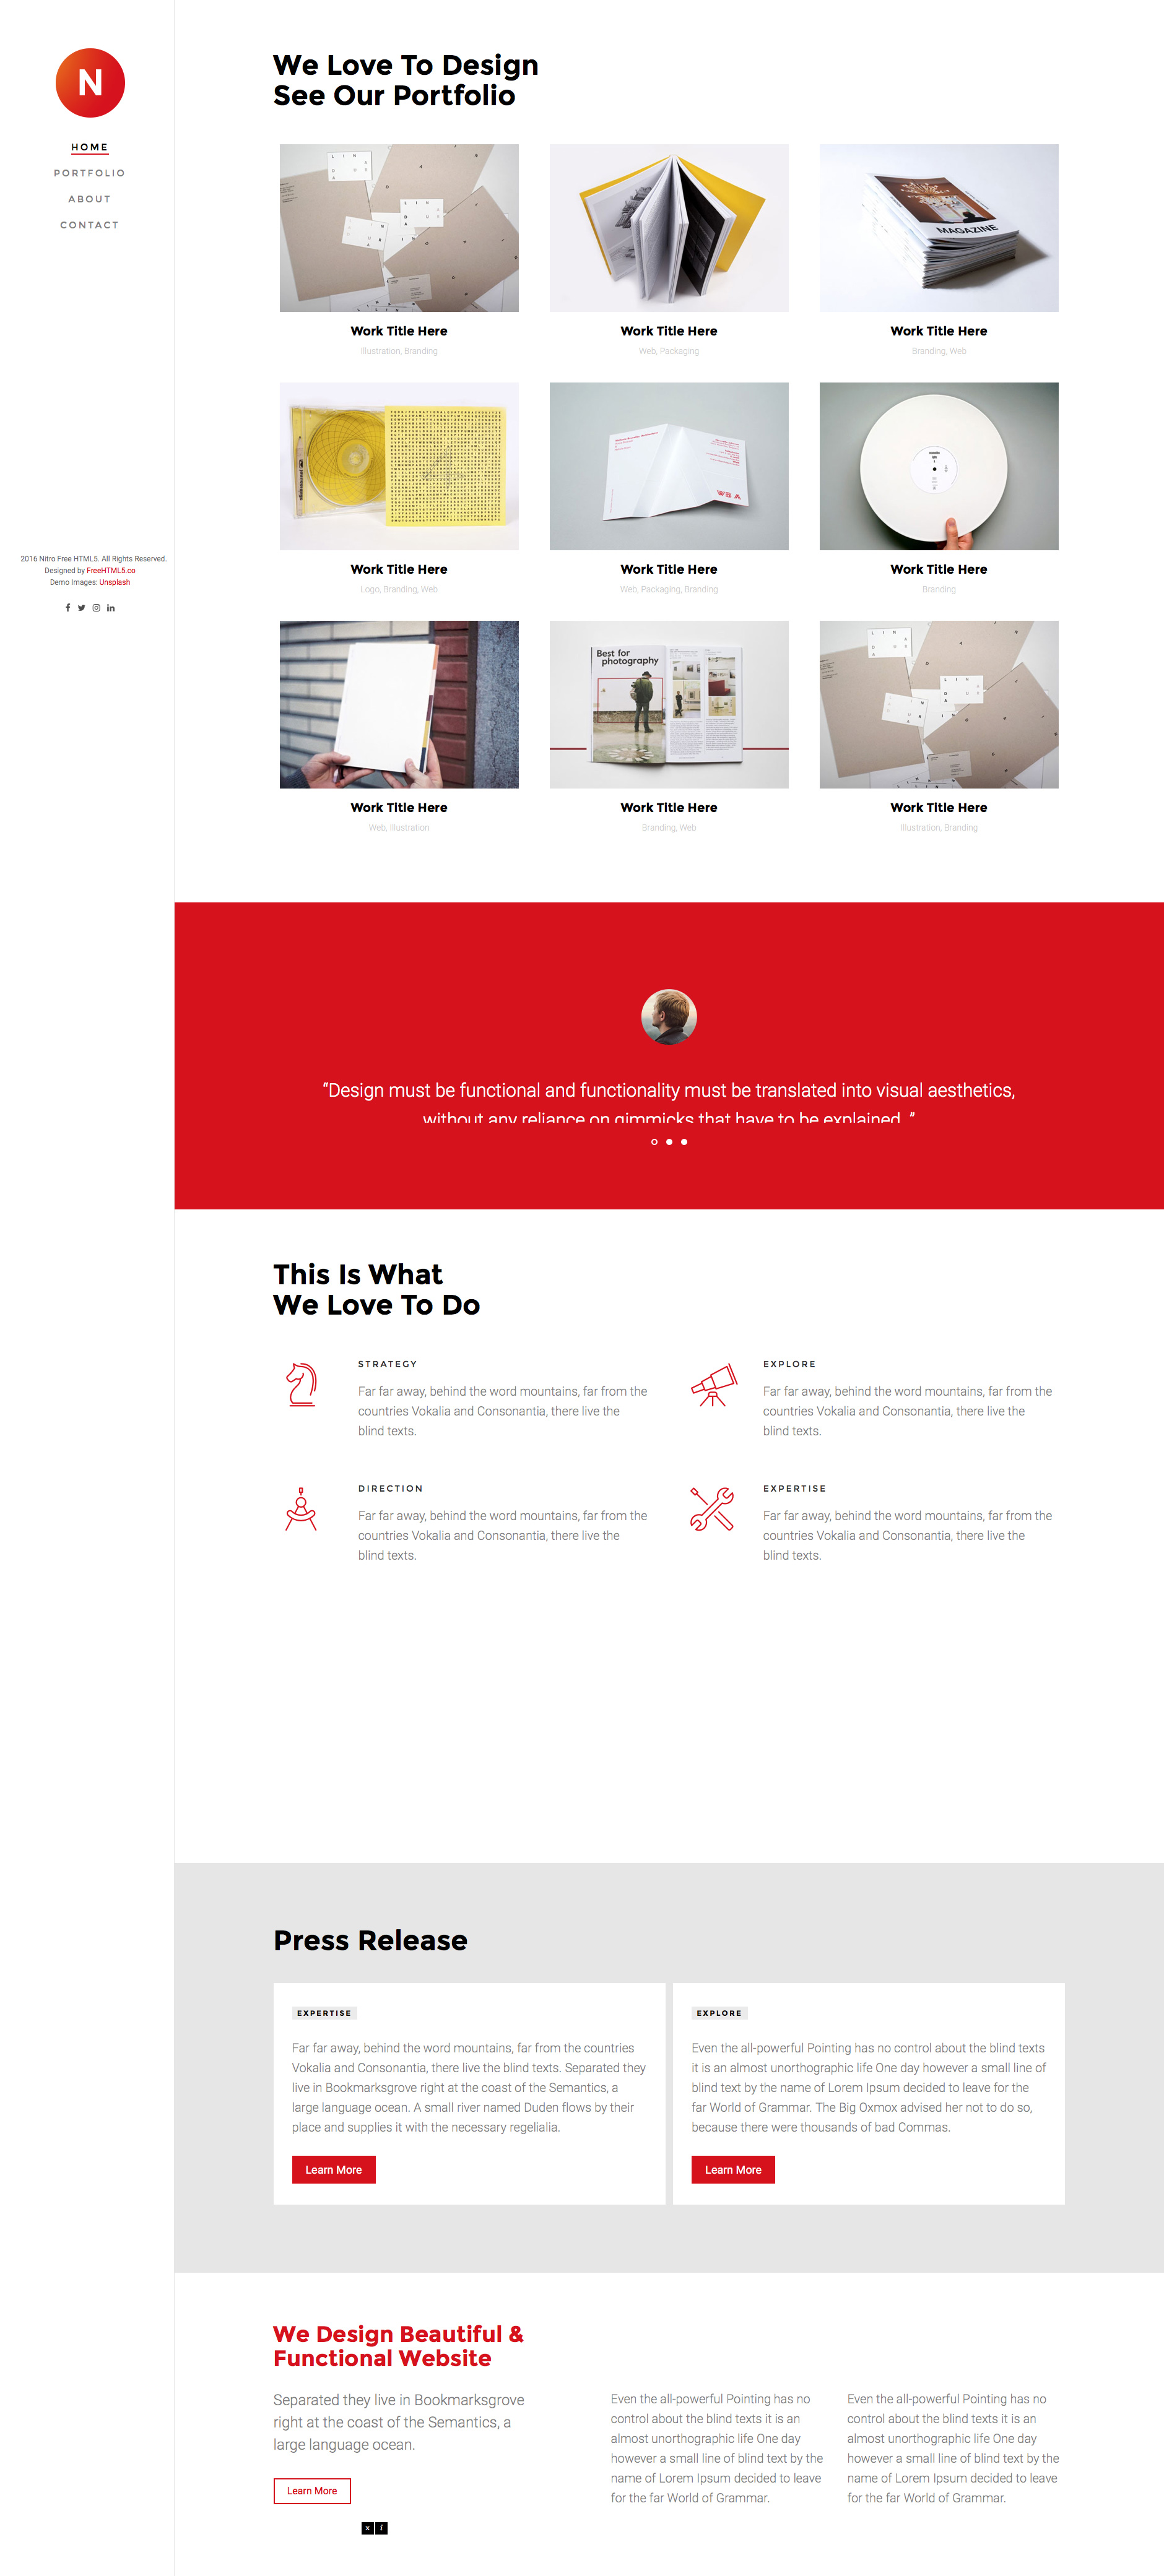 Nitro is a free responsive HTML5 website template using Bootstrap 3 framework. The speciality of this template is the left side menu section. Nitro template is the perfect choice for portfolio, web studio or agency website.